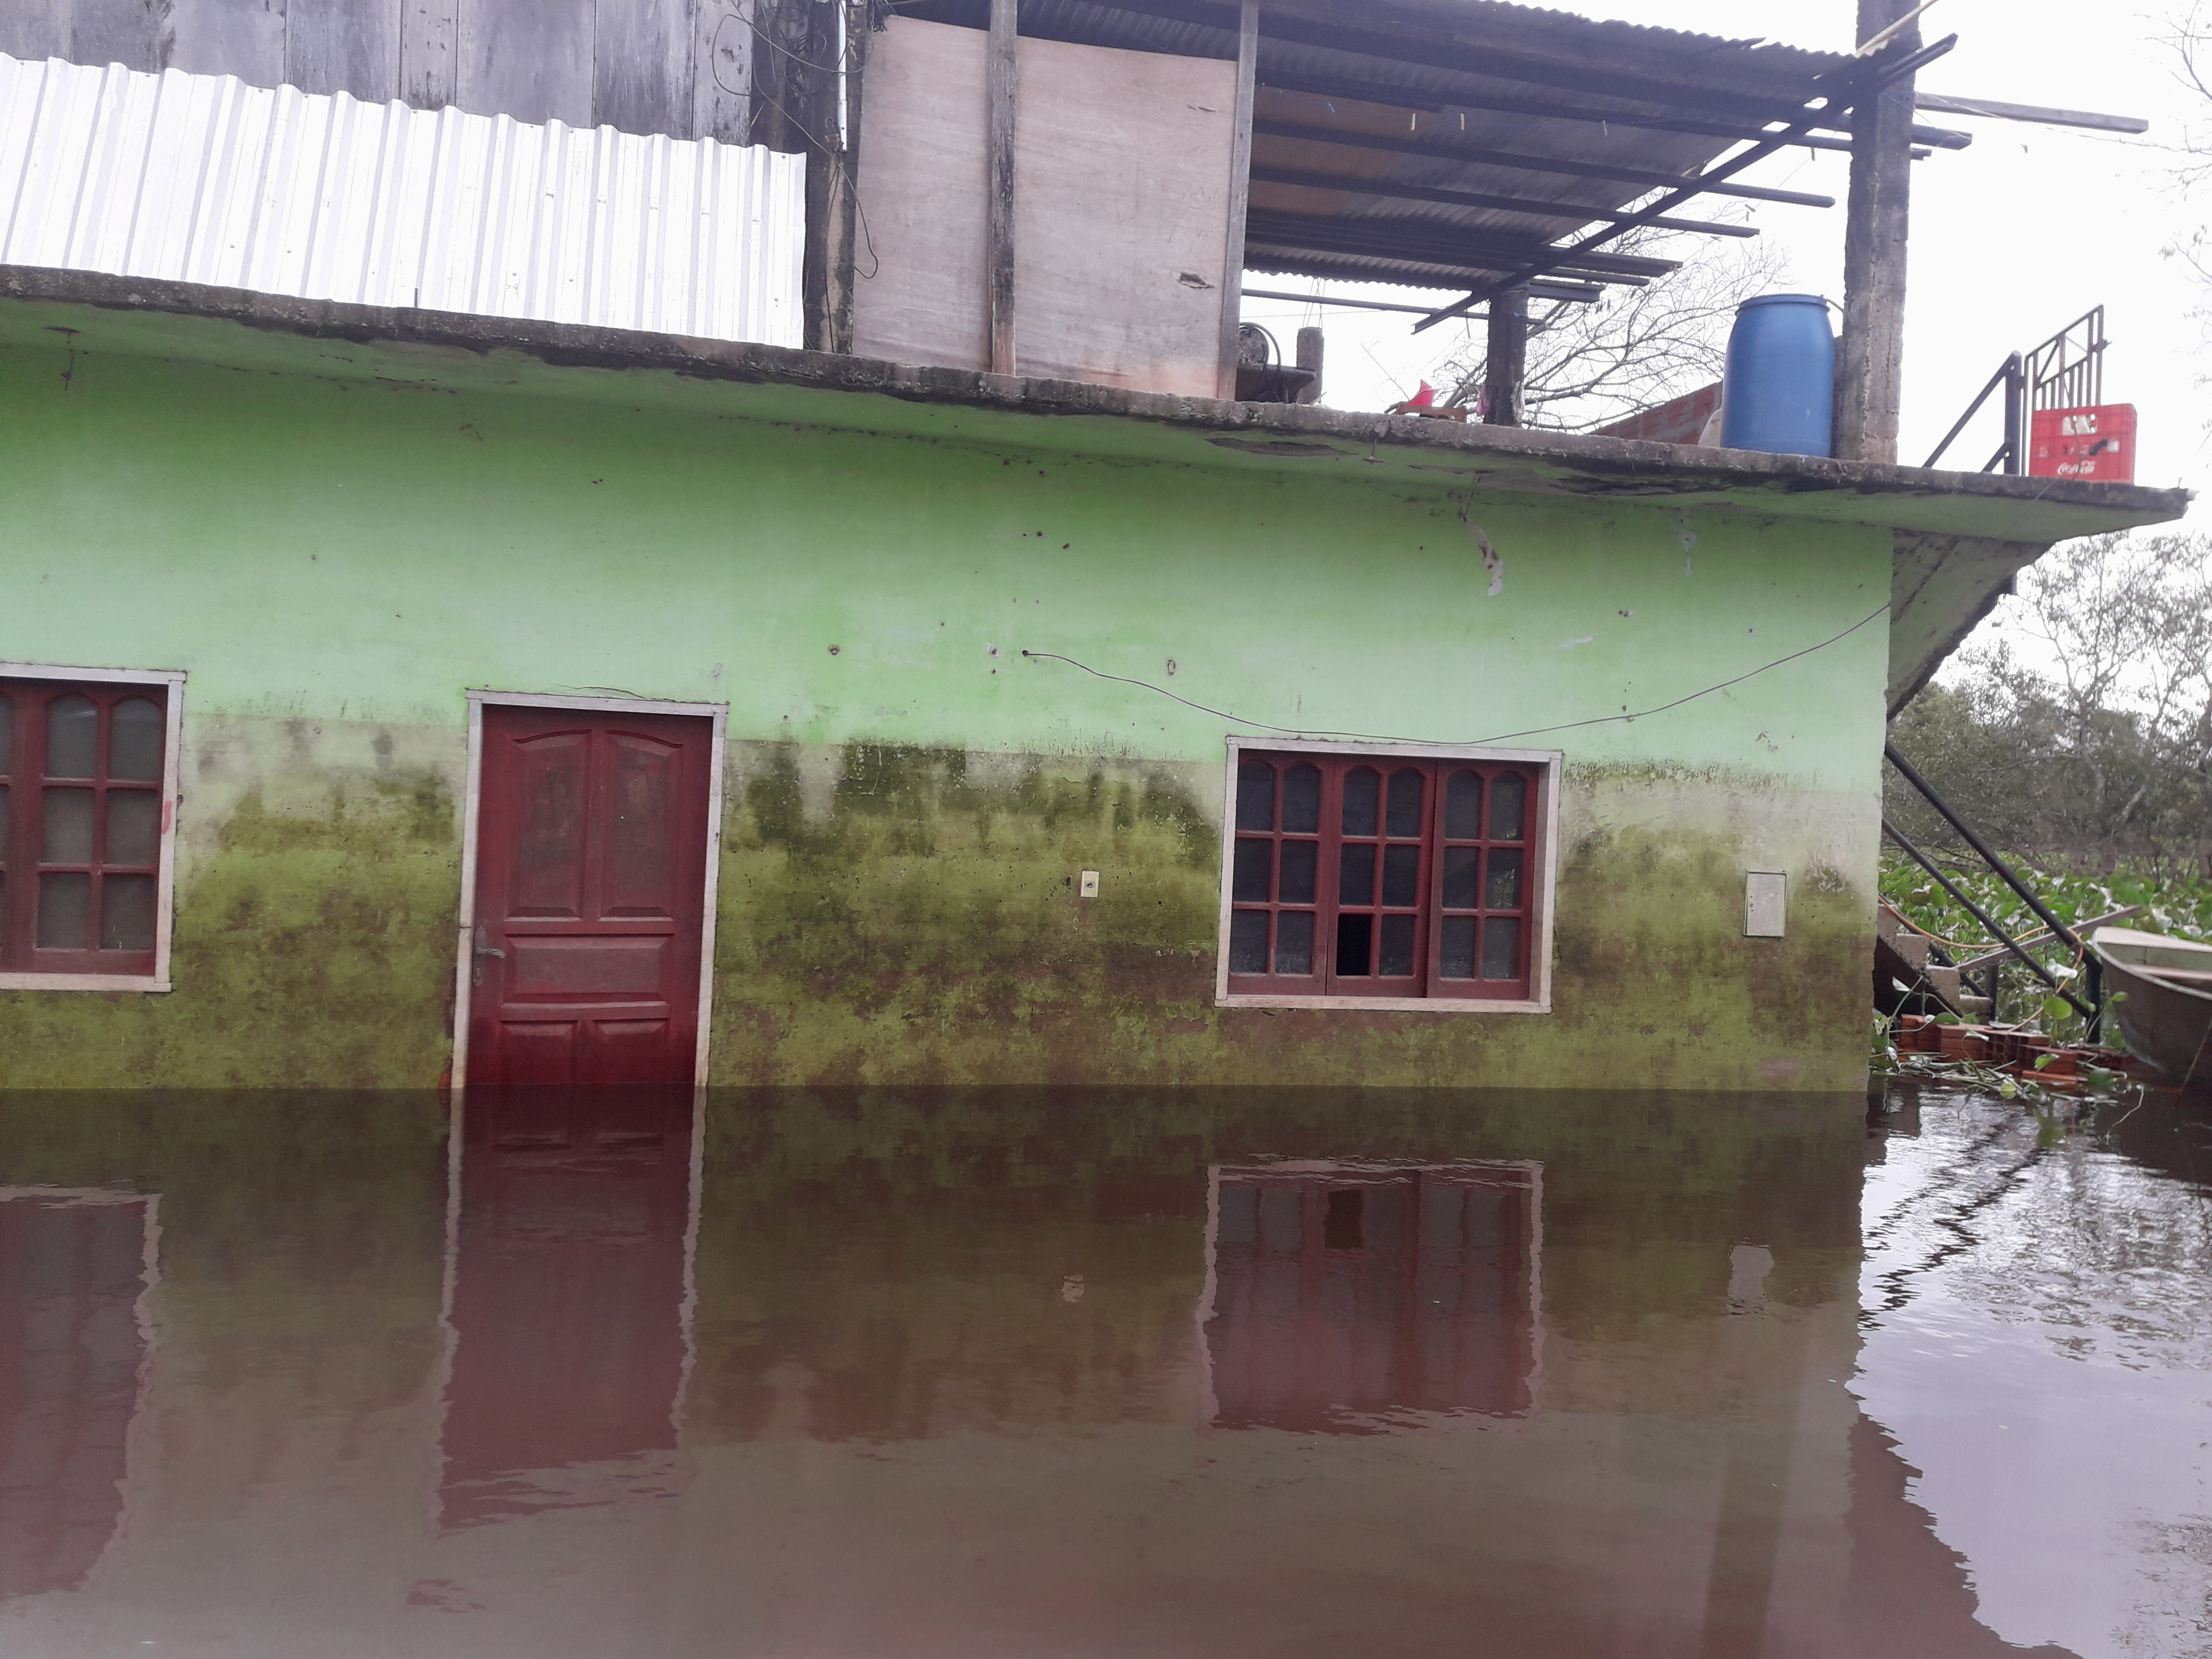 Small Building standing in thigh-high water